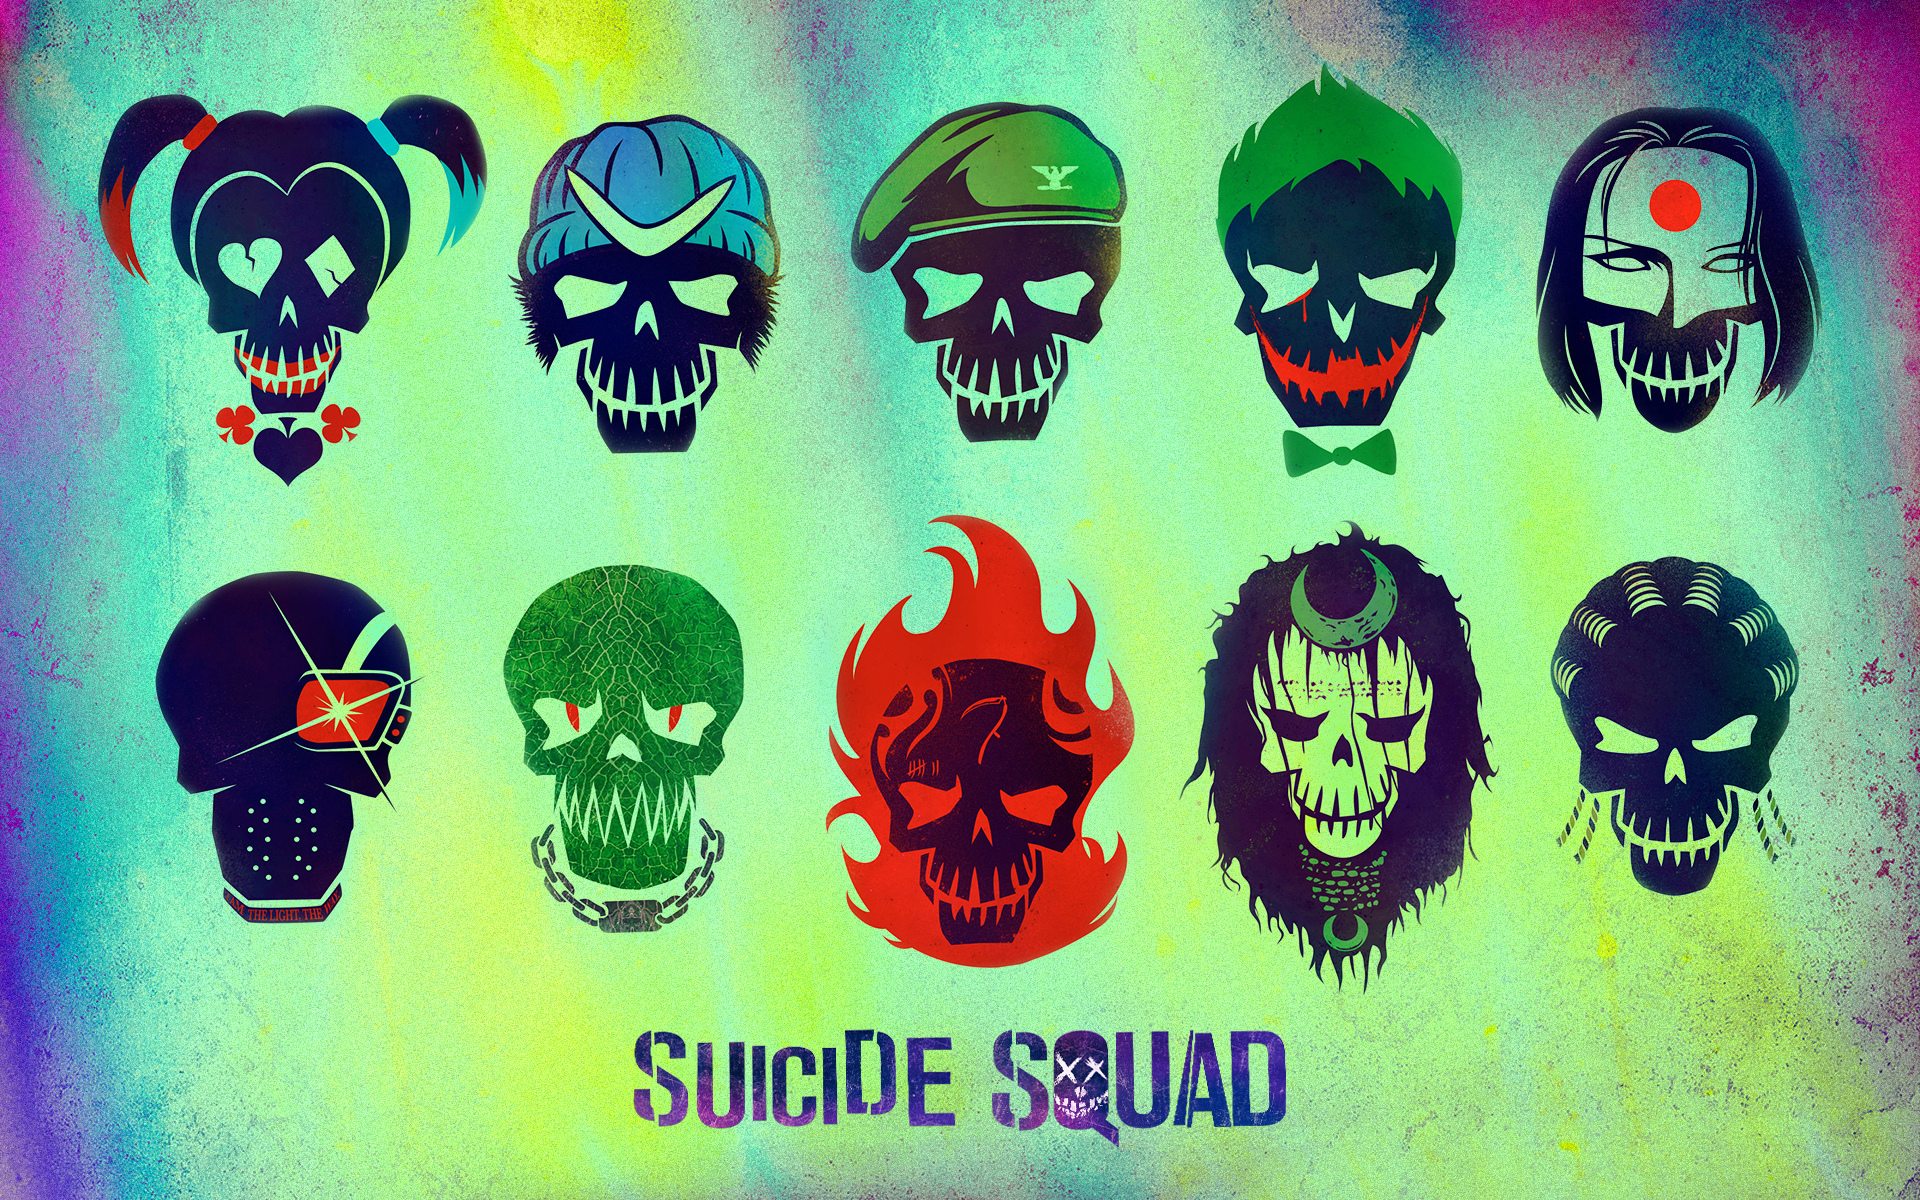 Suicide Squad Wallpapers Gallery 33 images 1920x1200